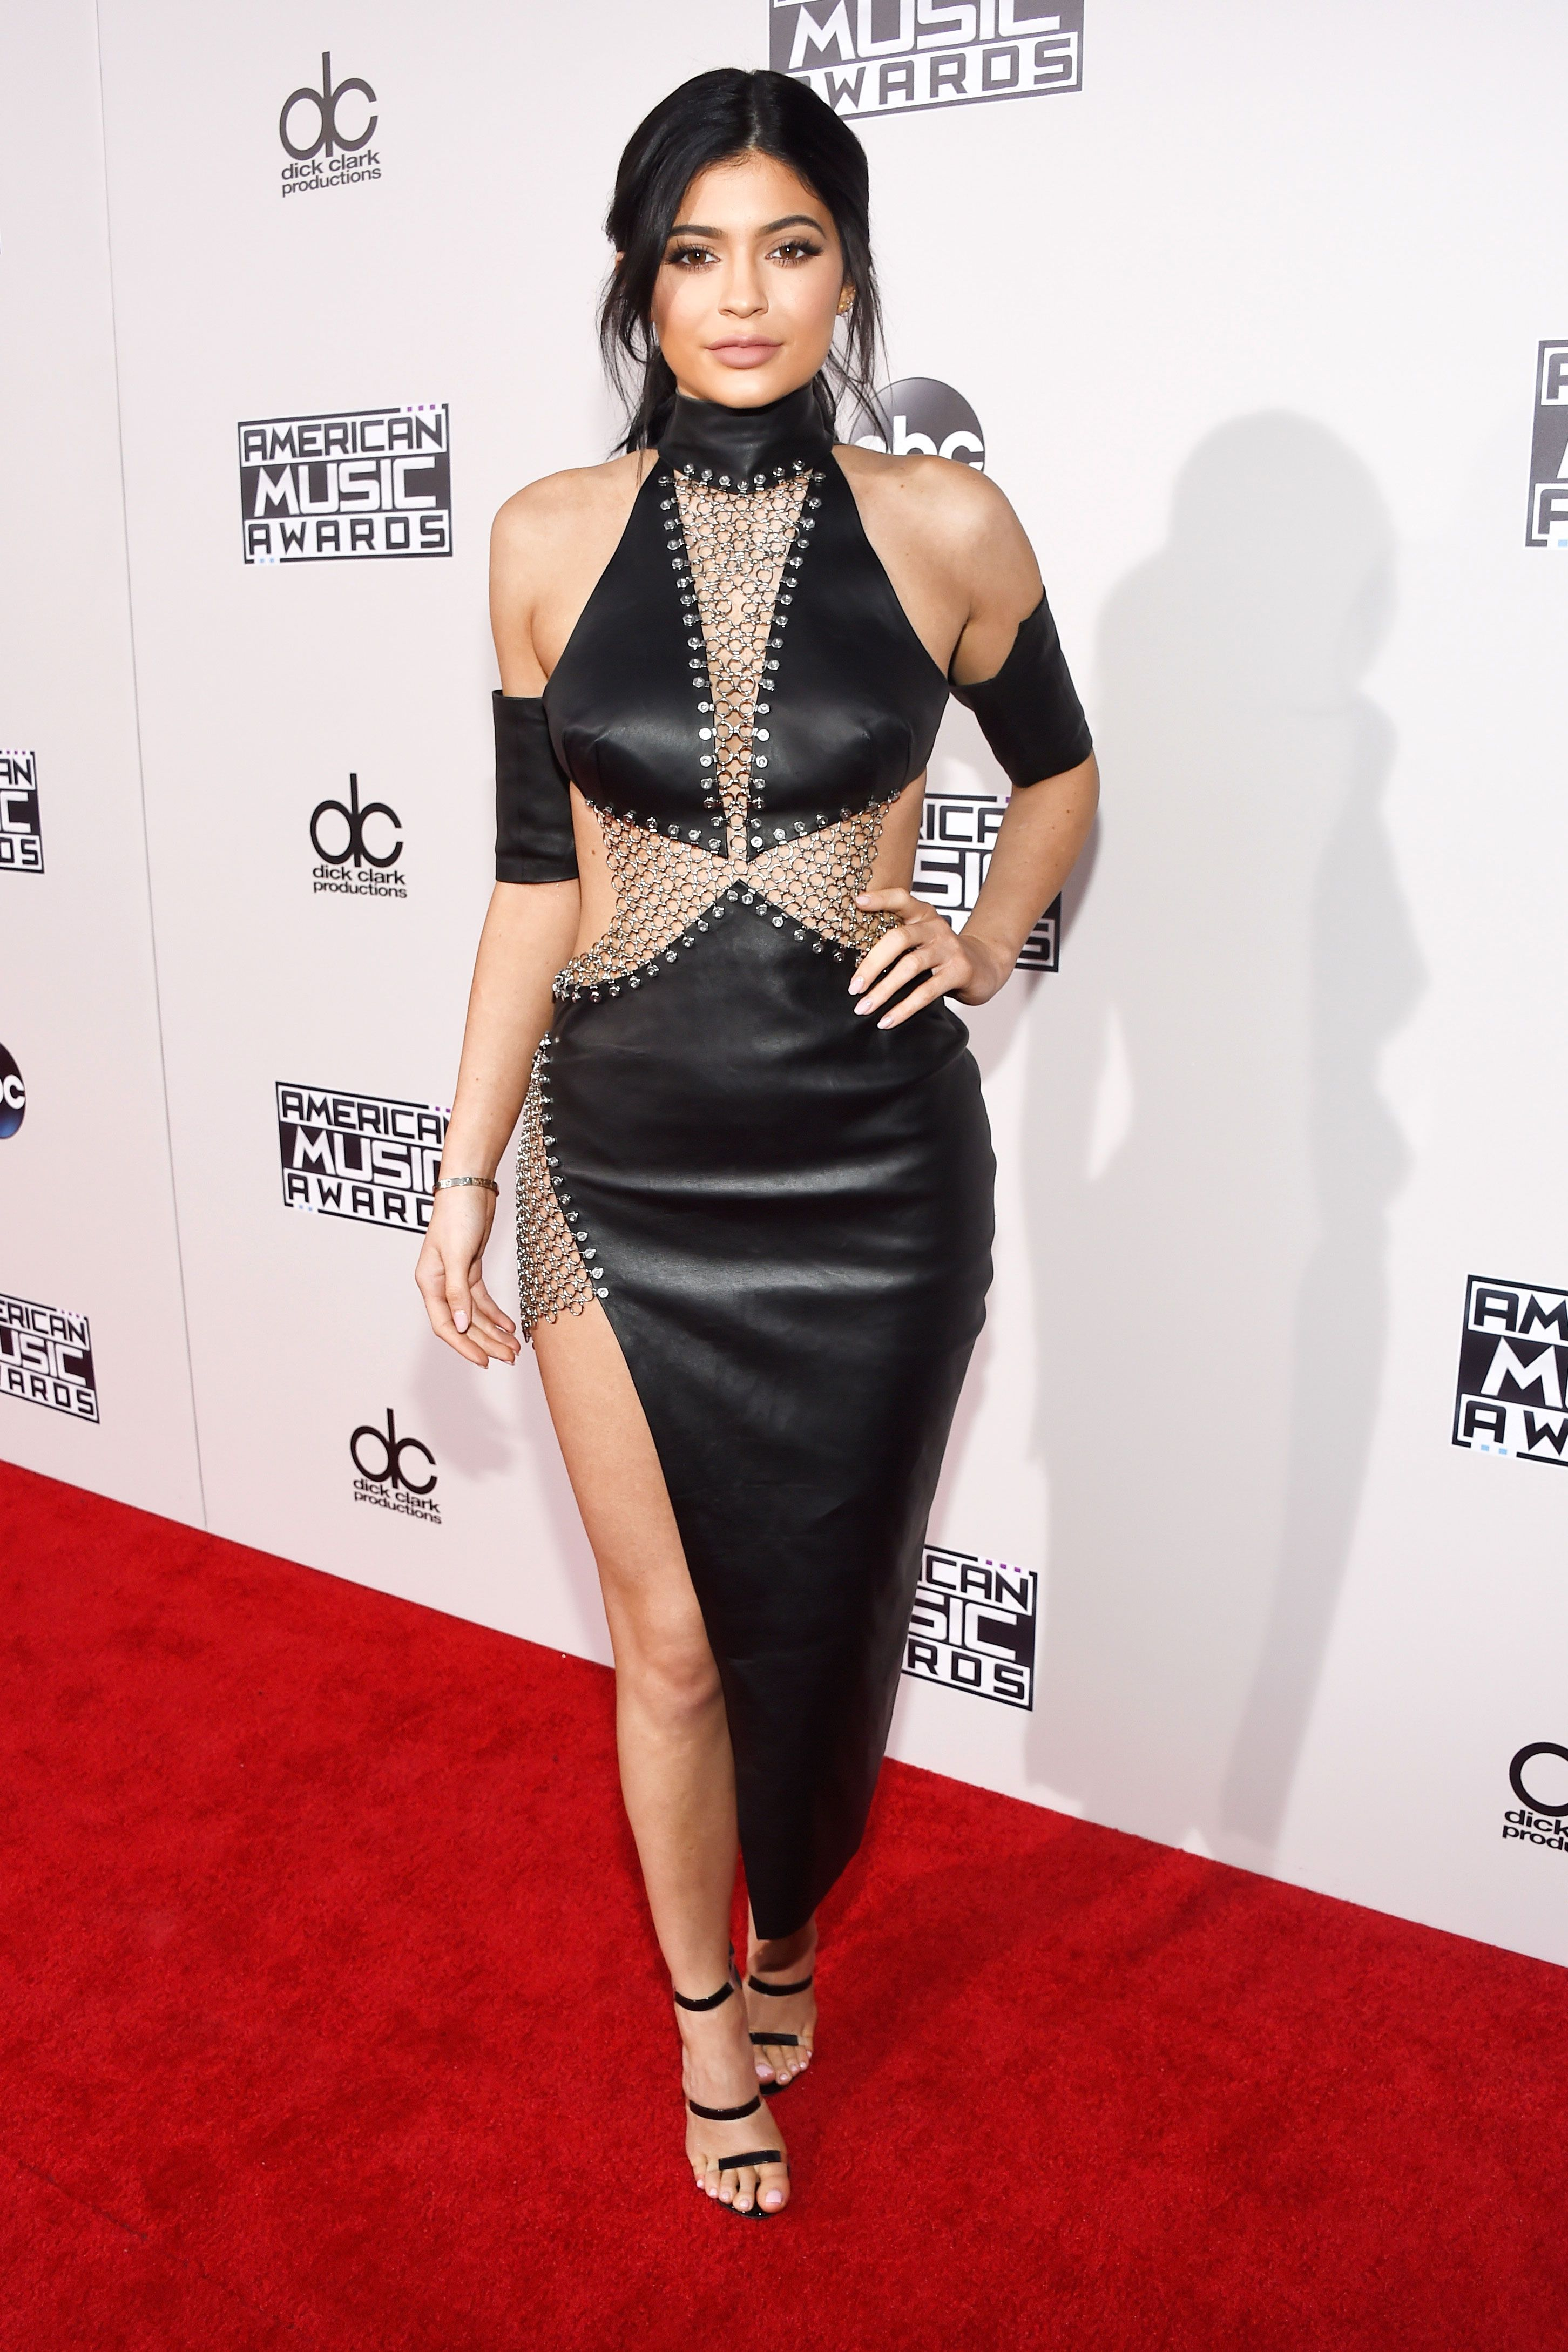 400abce014 See All the Best Looks From the 2015 American Music Awards